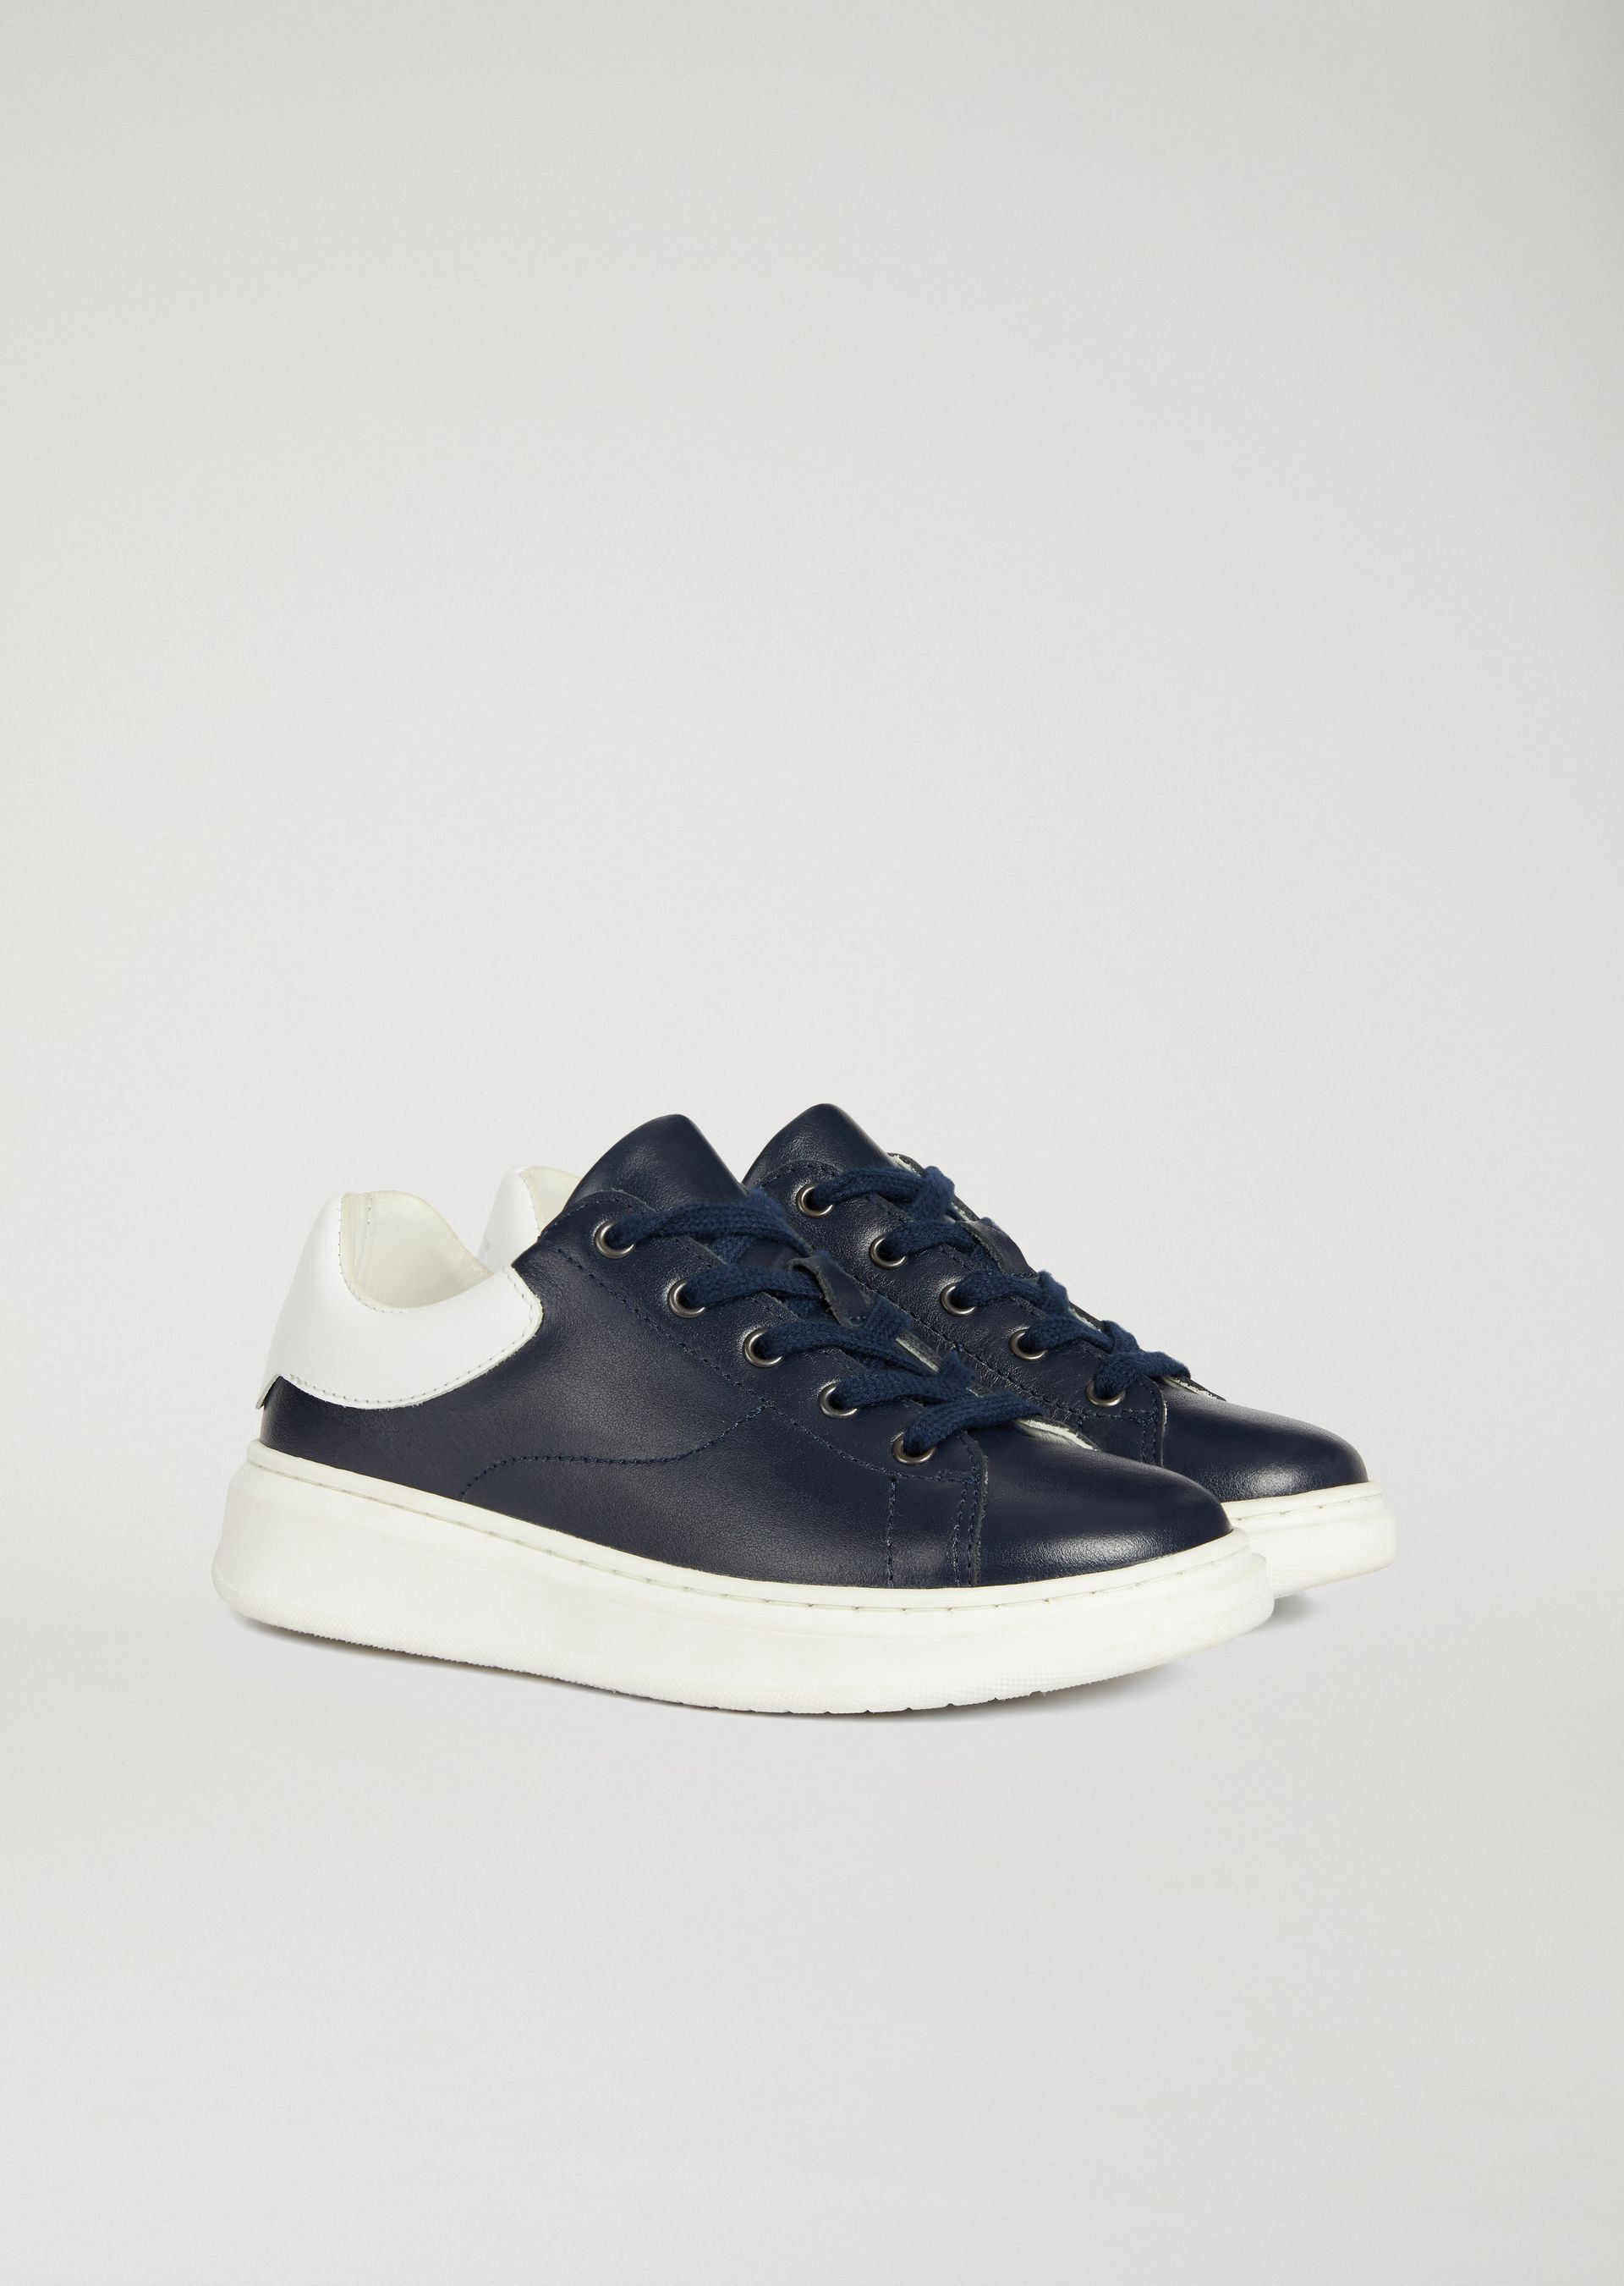 506c17178 Emporio Armani Nappa Sneakers With Logo - Navy Blue 30 | Products ...